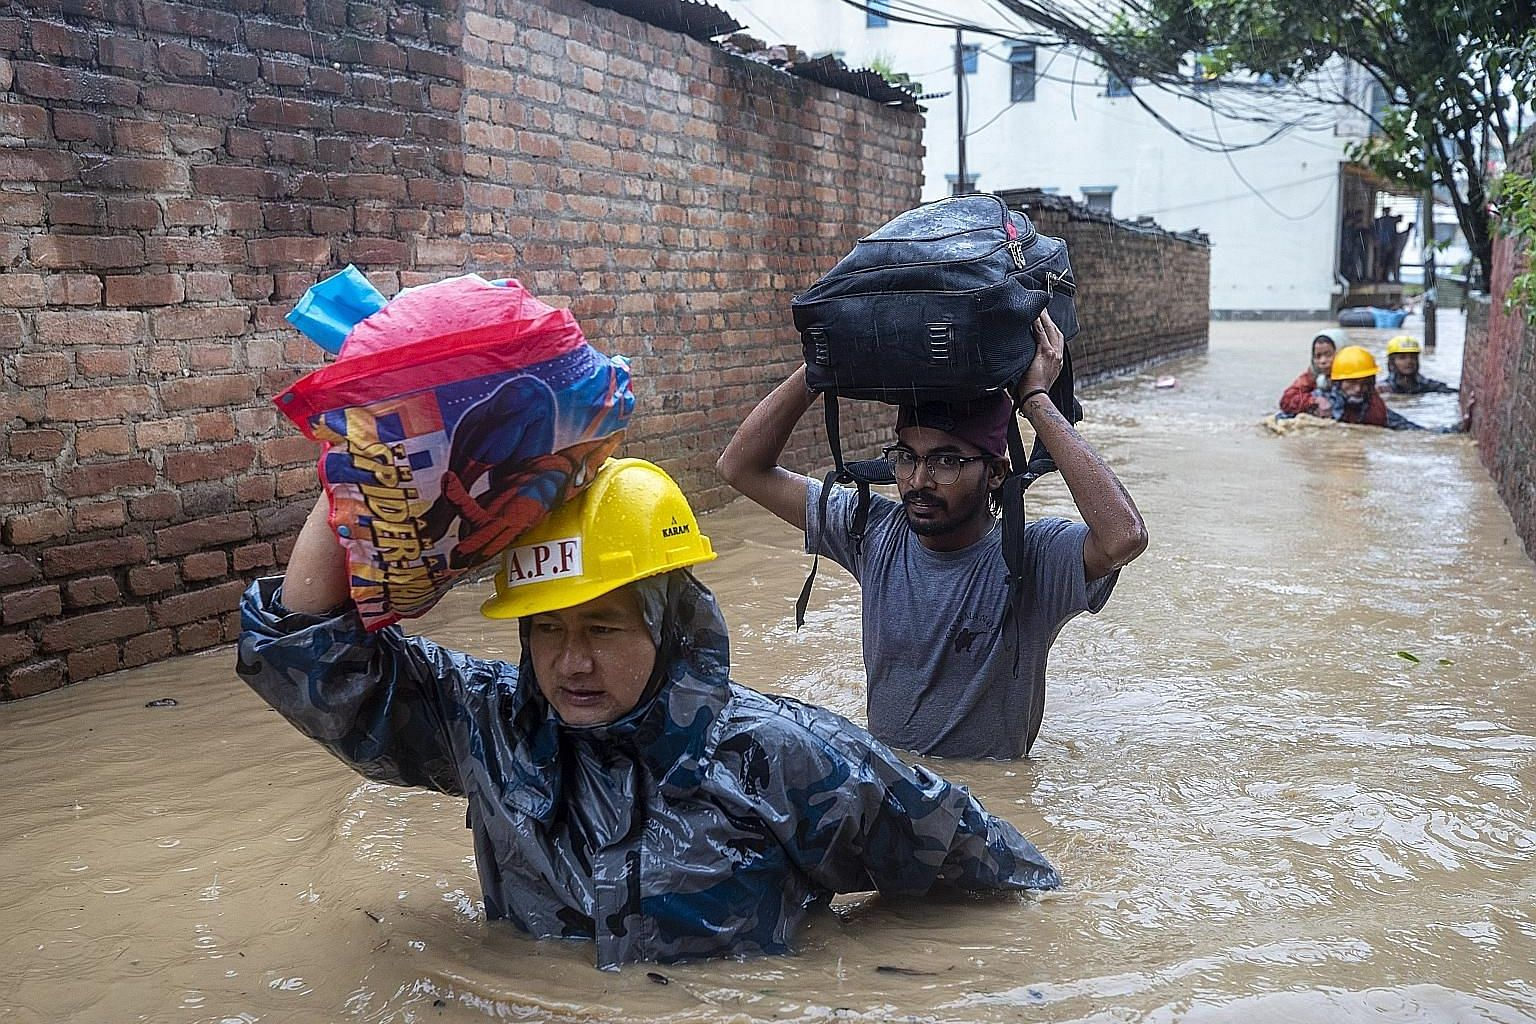 Police rescuing people yesterday from flooded houses following torrential rains in Kathmandu. In Nepal, 27 people have died in floods and landslides after heavy rains hit the country's eastern region and the southern plains.